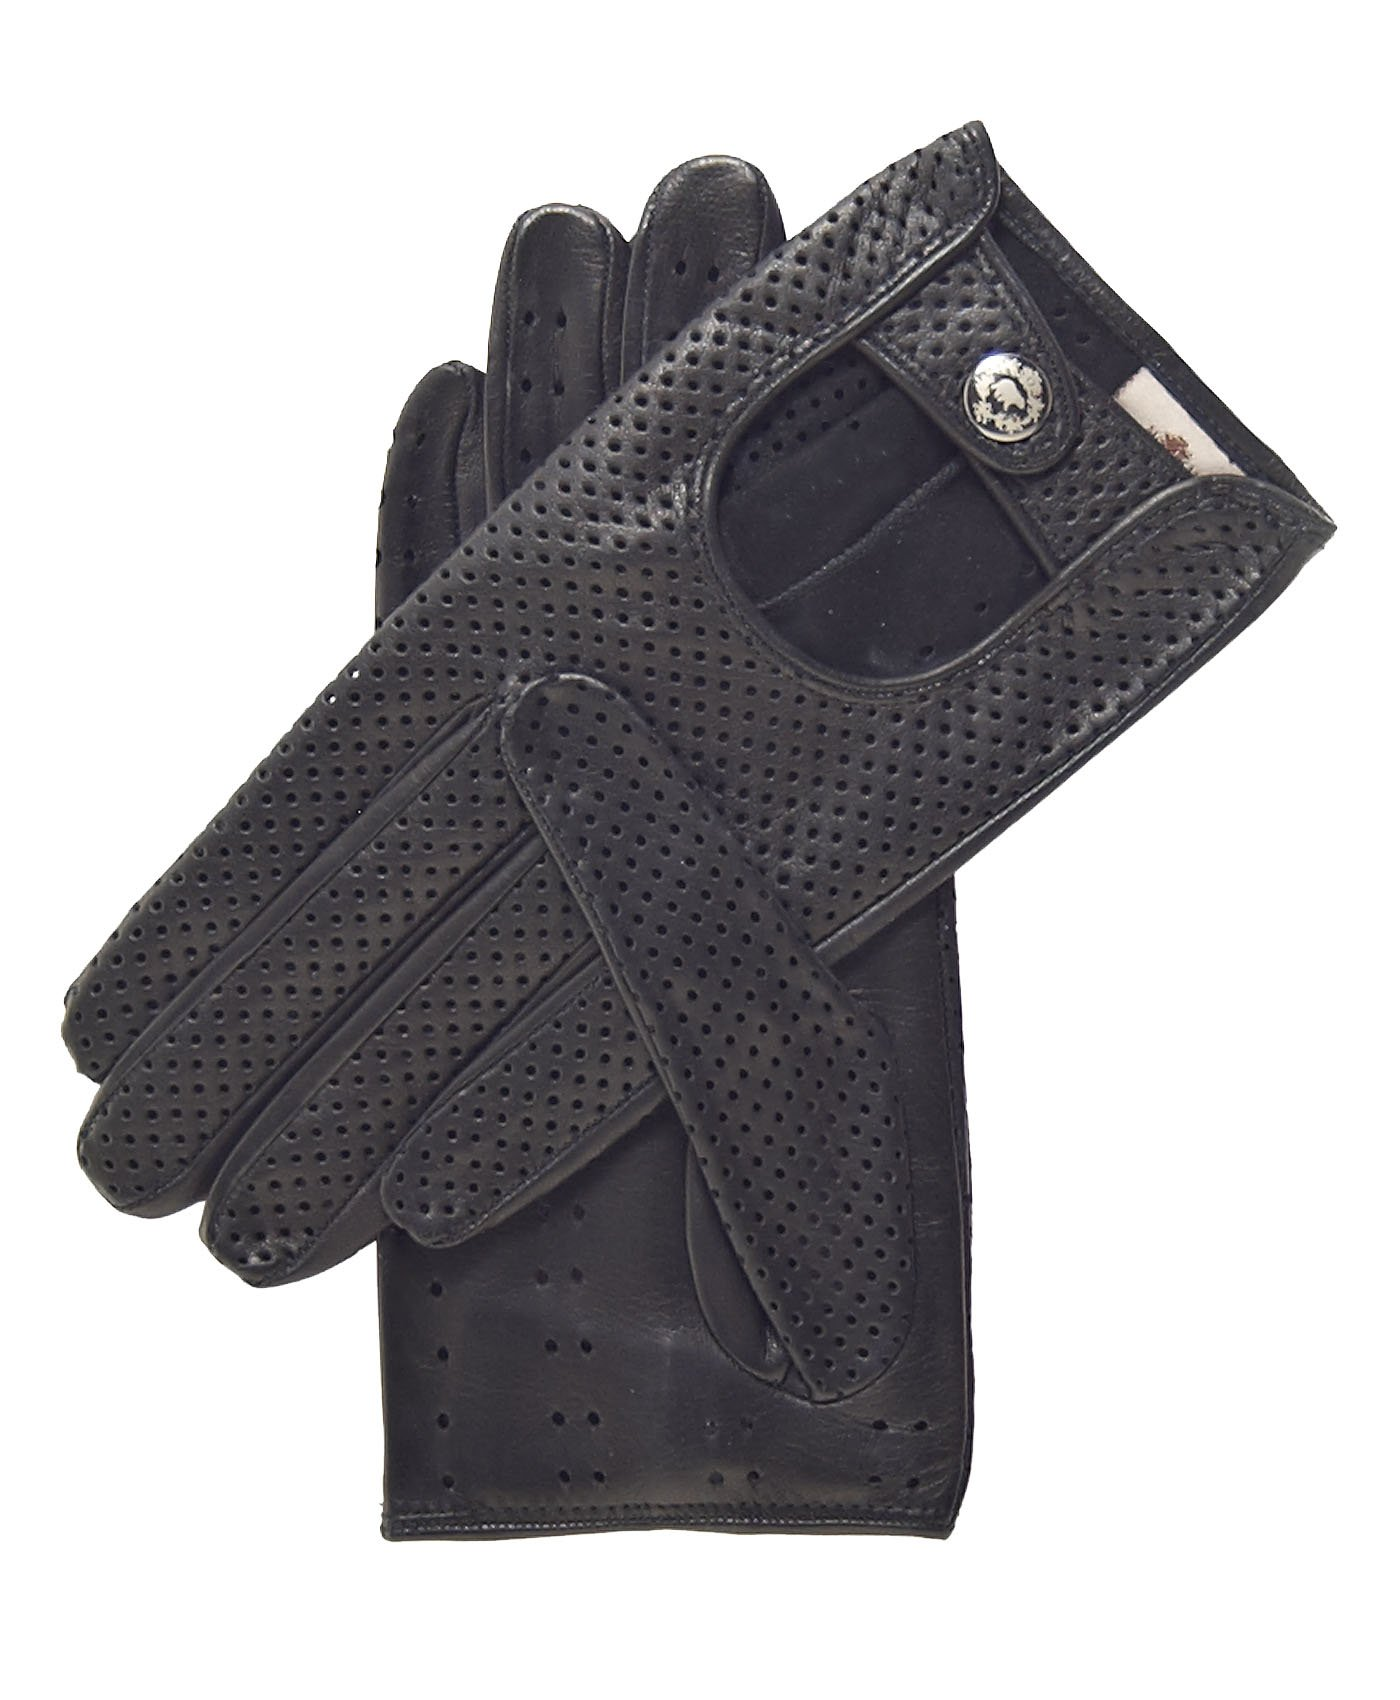 Fratelli Orsini Women's Ventilated Leather Driving Gloves Size 7 Color Black